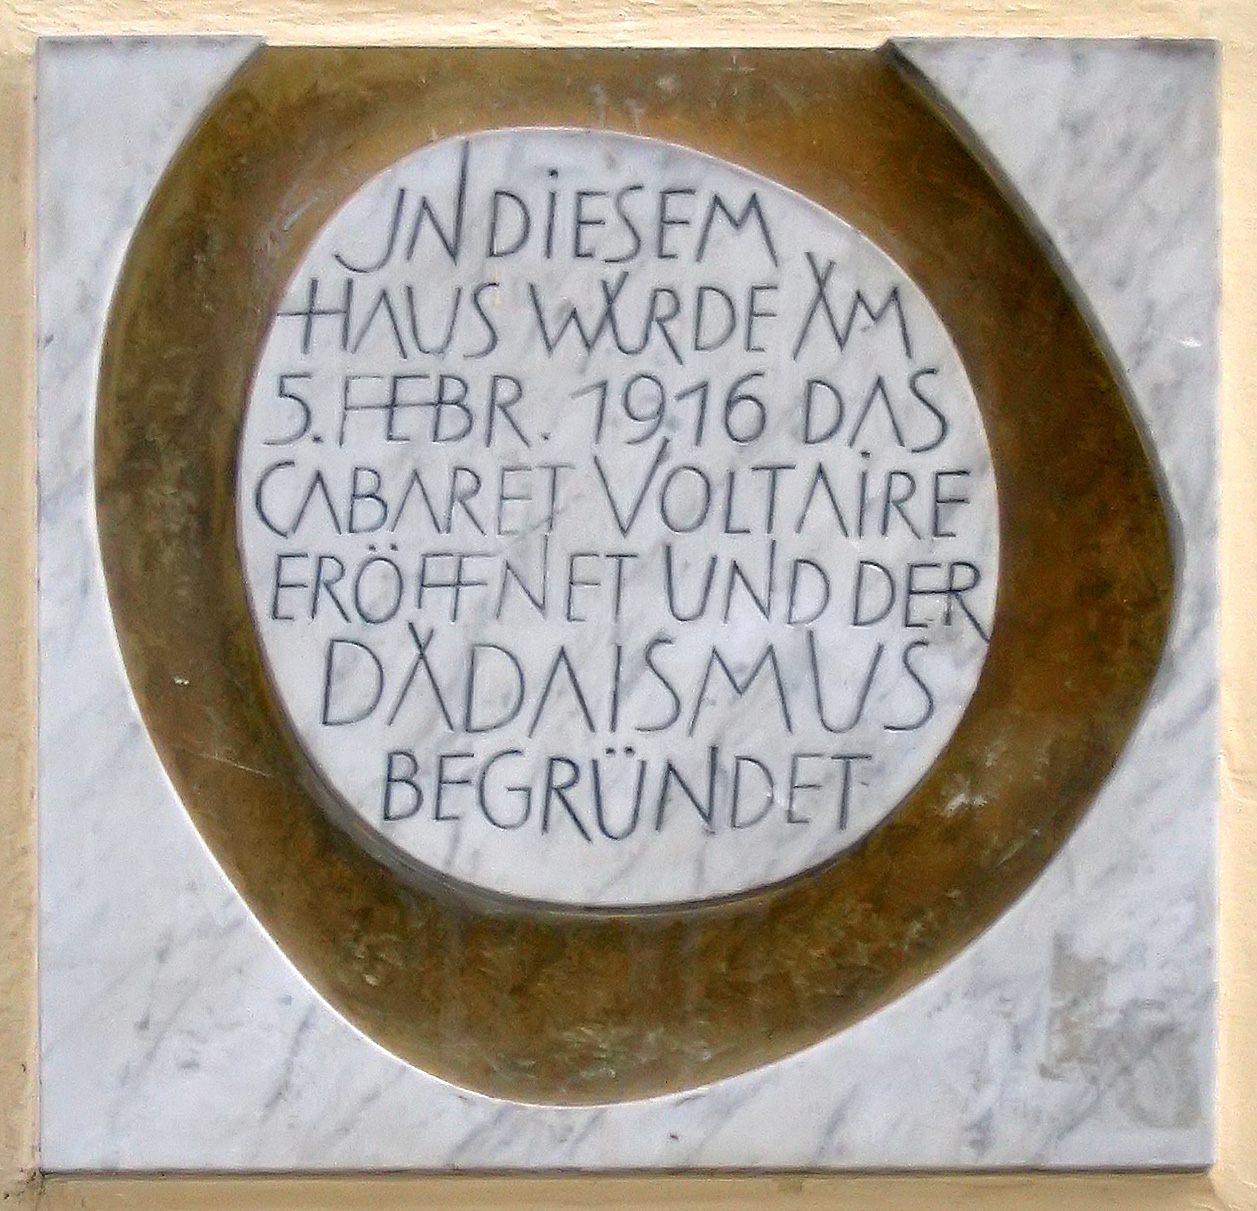 Plaque commemorating birth of Dada movement.